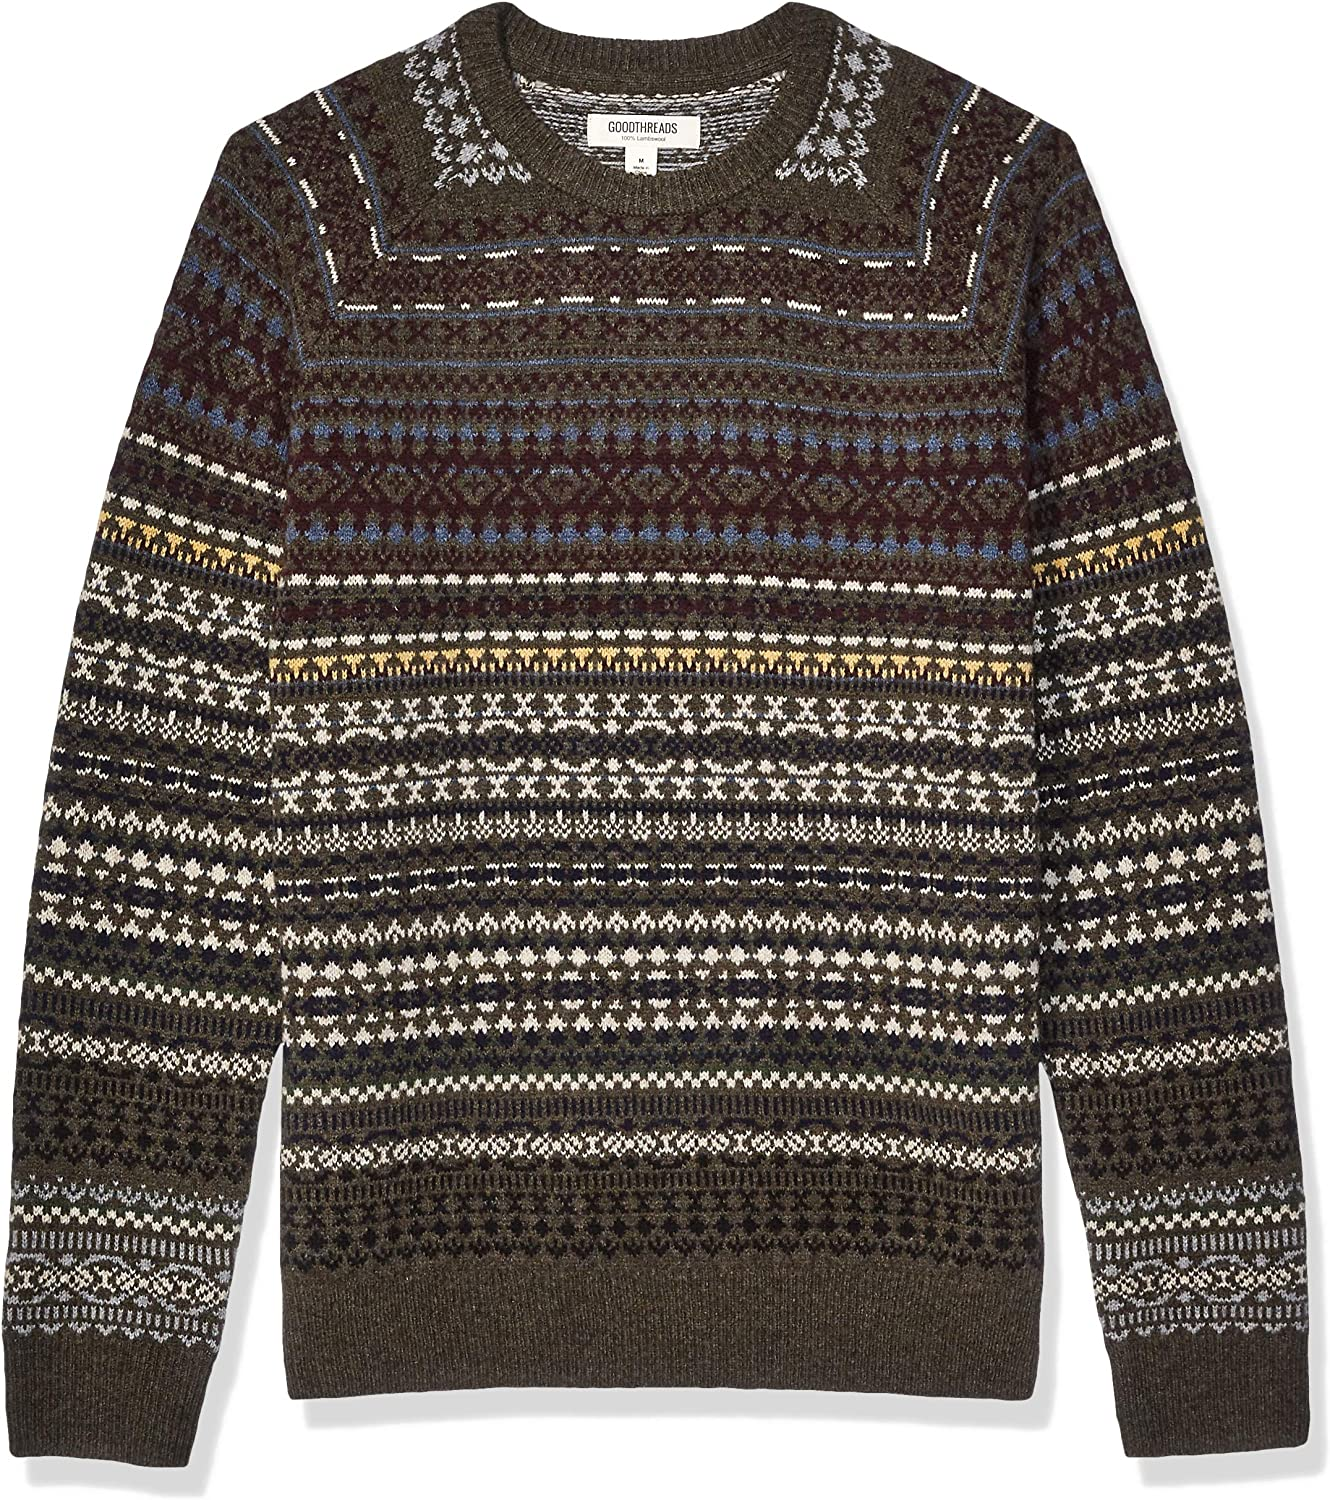 Men's Vintage Sweaters, Retro Jumpers 1920s to 1980s Amazon Brand - Goodthreads Mens  Lambswool Crewneck Sweater $50.00 AT vintagedancer.com